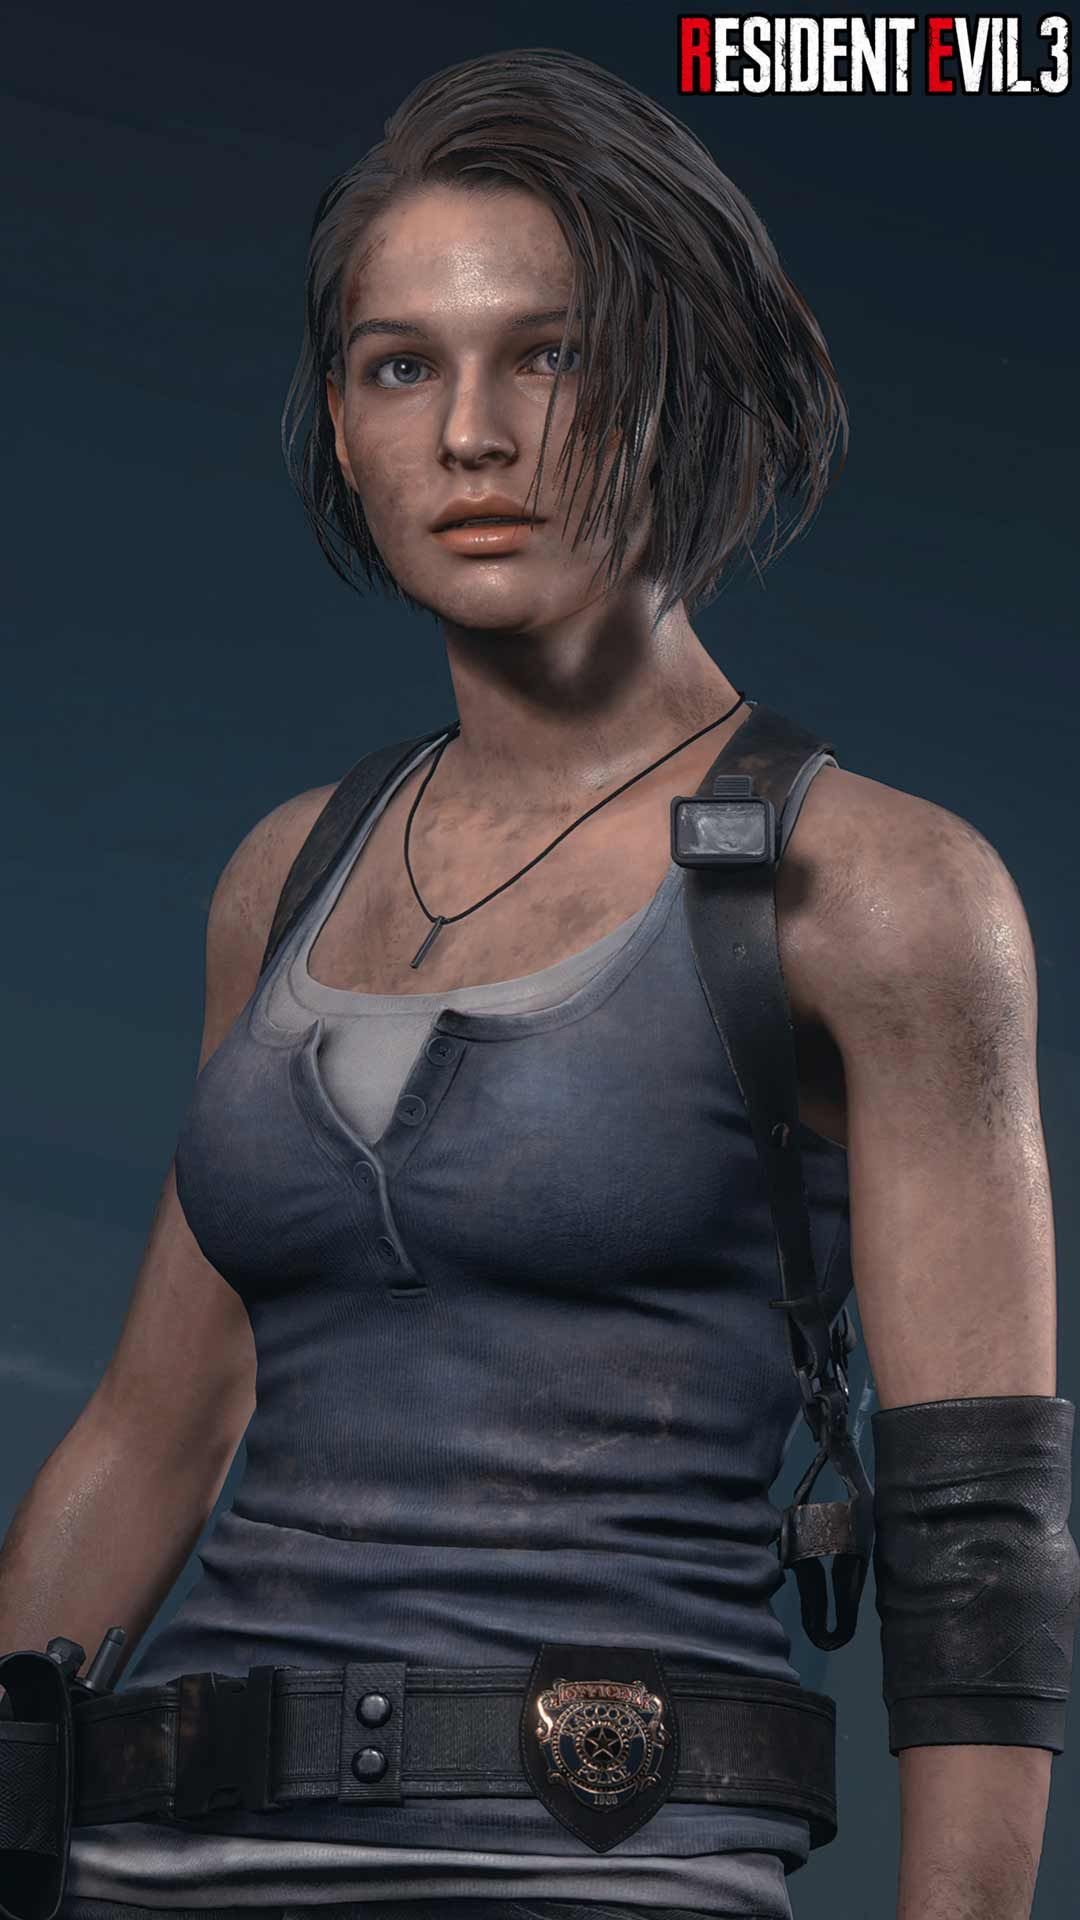 Jill Valentine Re3 Remake Wallpaper Hd Phone Backgrounds 2020 Game Art Poster On Iphone Android In 2020 Resident Evil Girl Resident Evil Jill Valentine